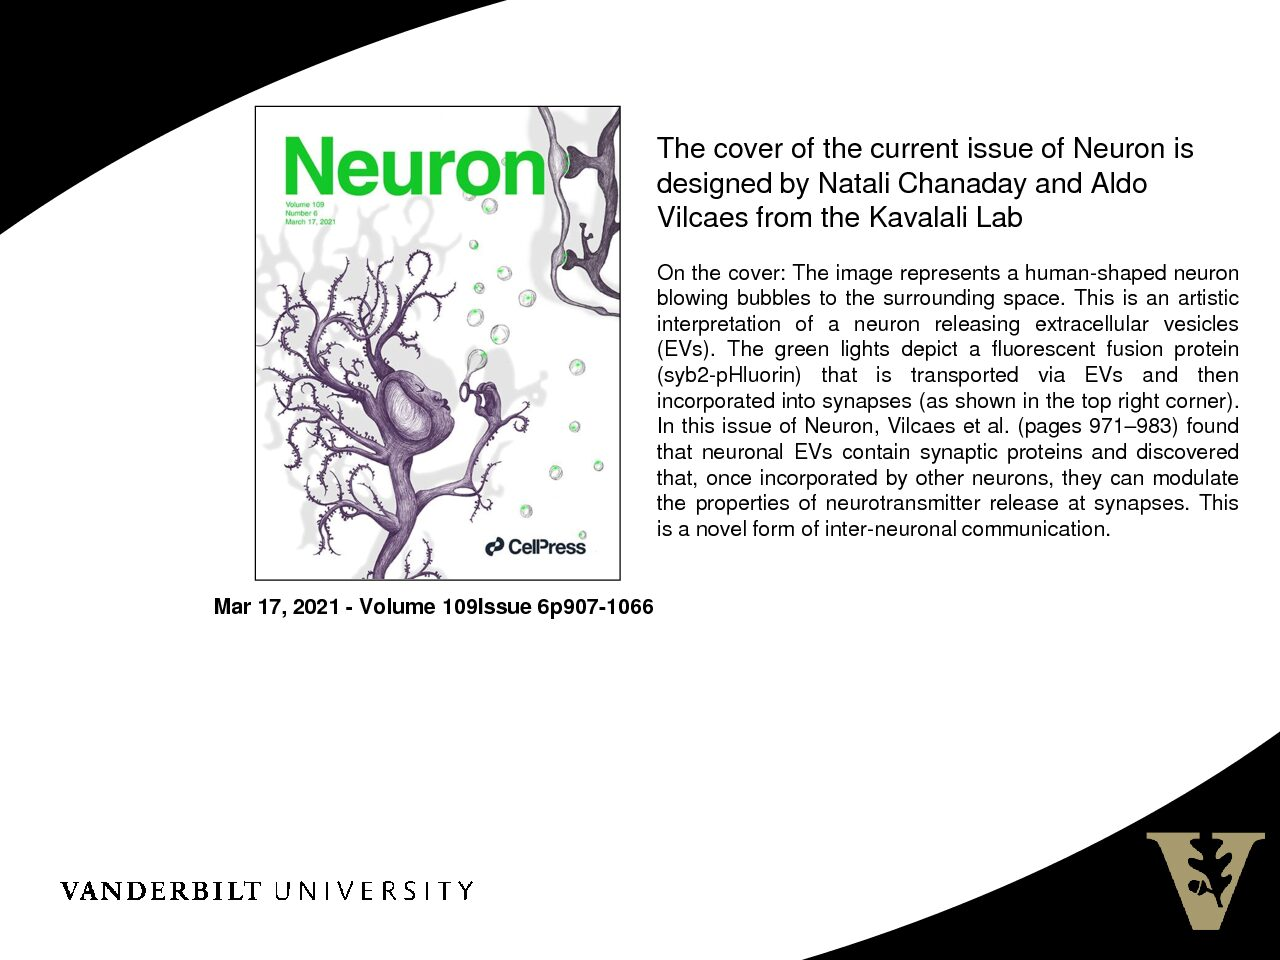 Cover of Neuron Designed by Natali Chanaday and Aldo Vilcaes from Kavalali Lab